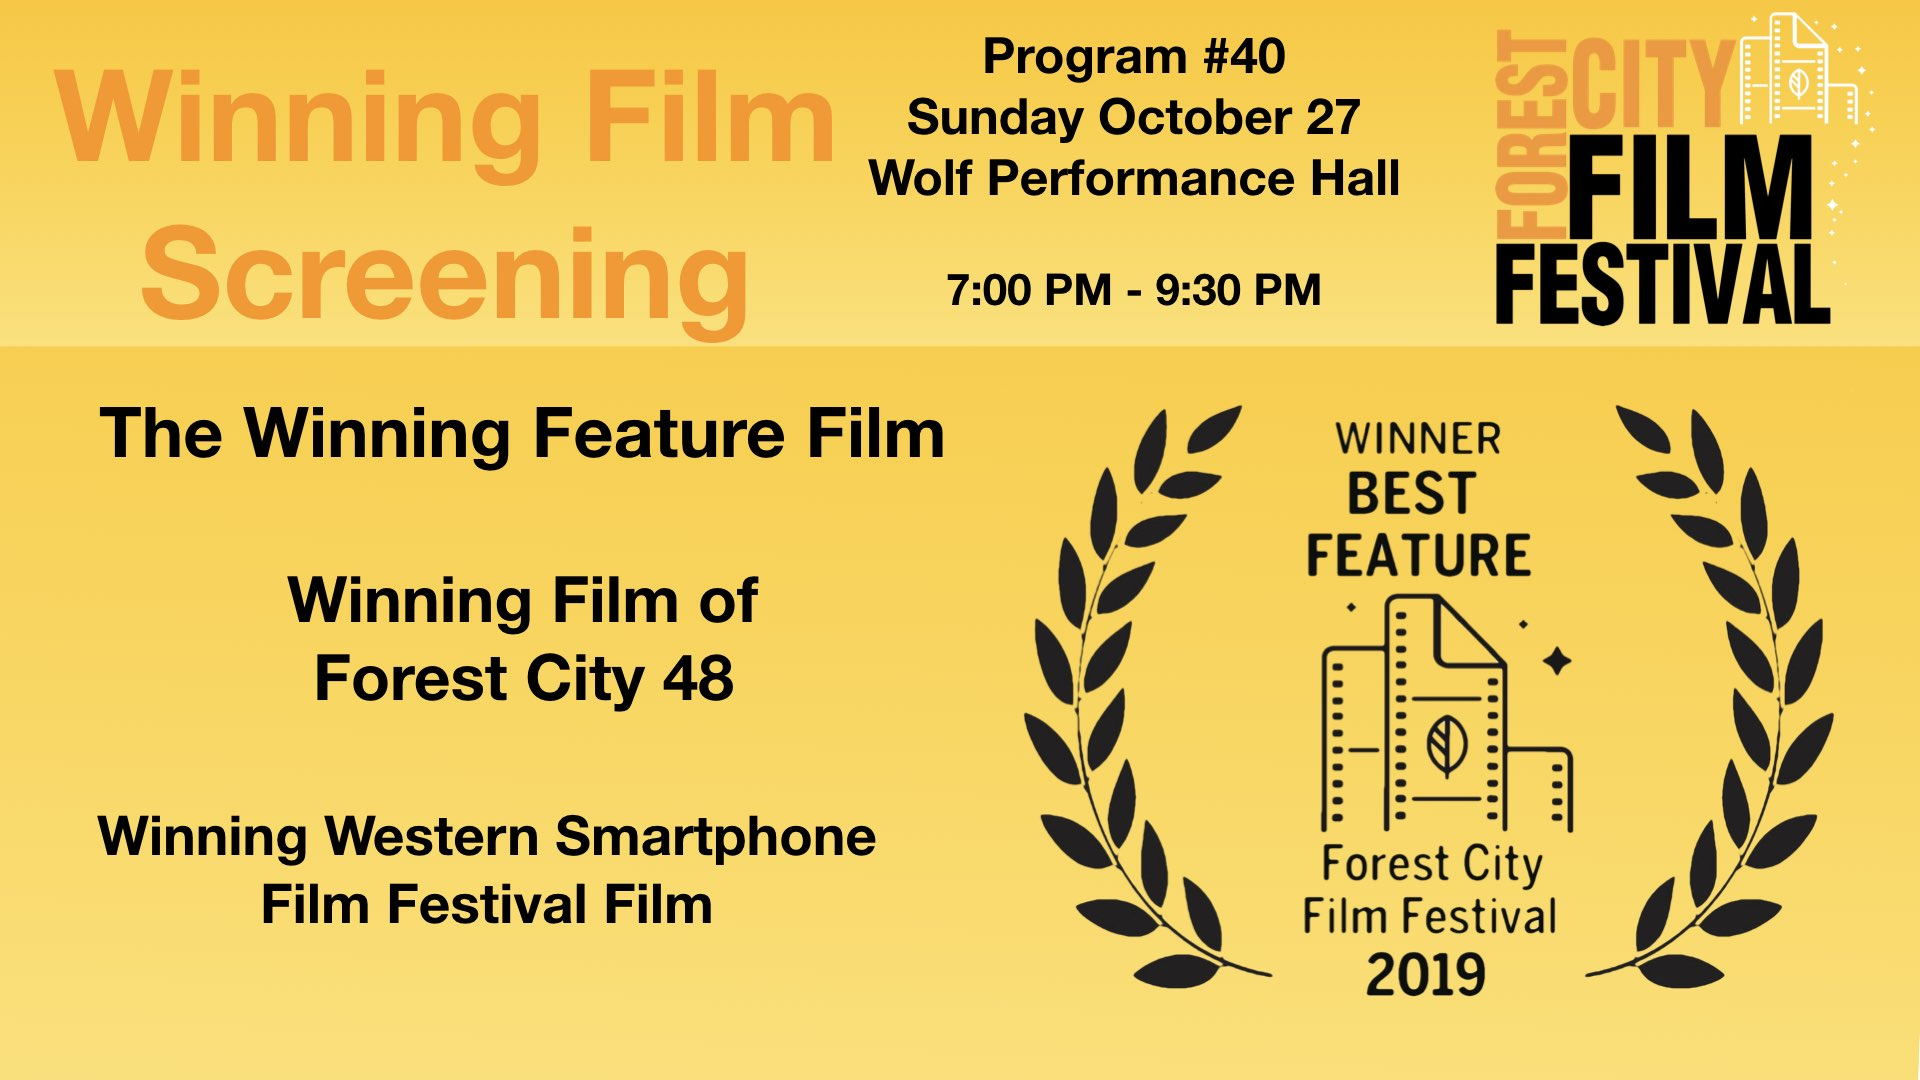 FCFF 2019 - Sunday night at Wolf, Program #40 - Closing screening